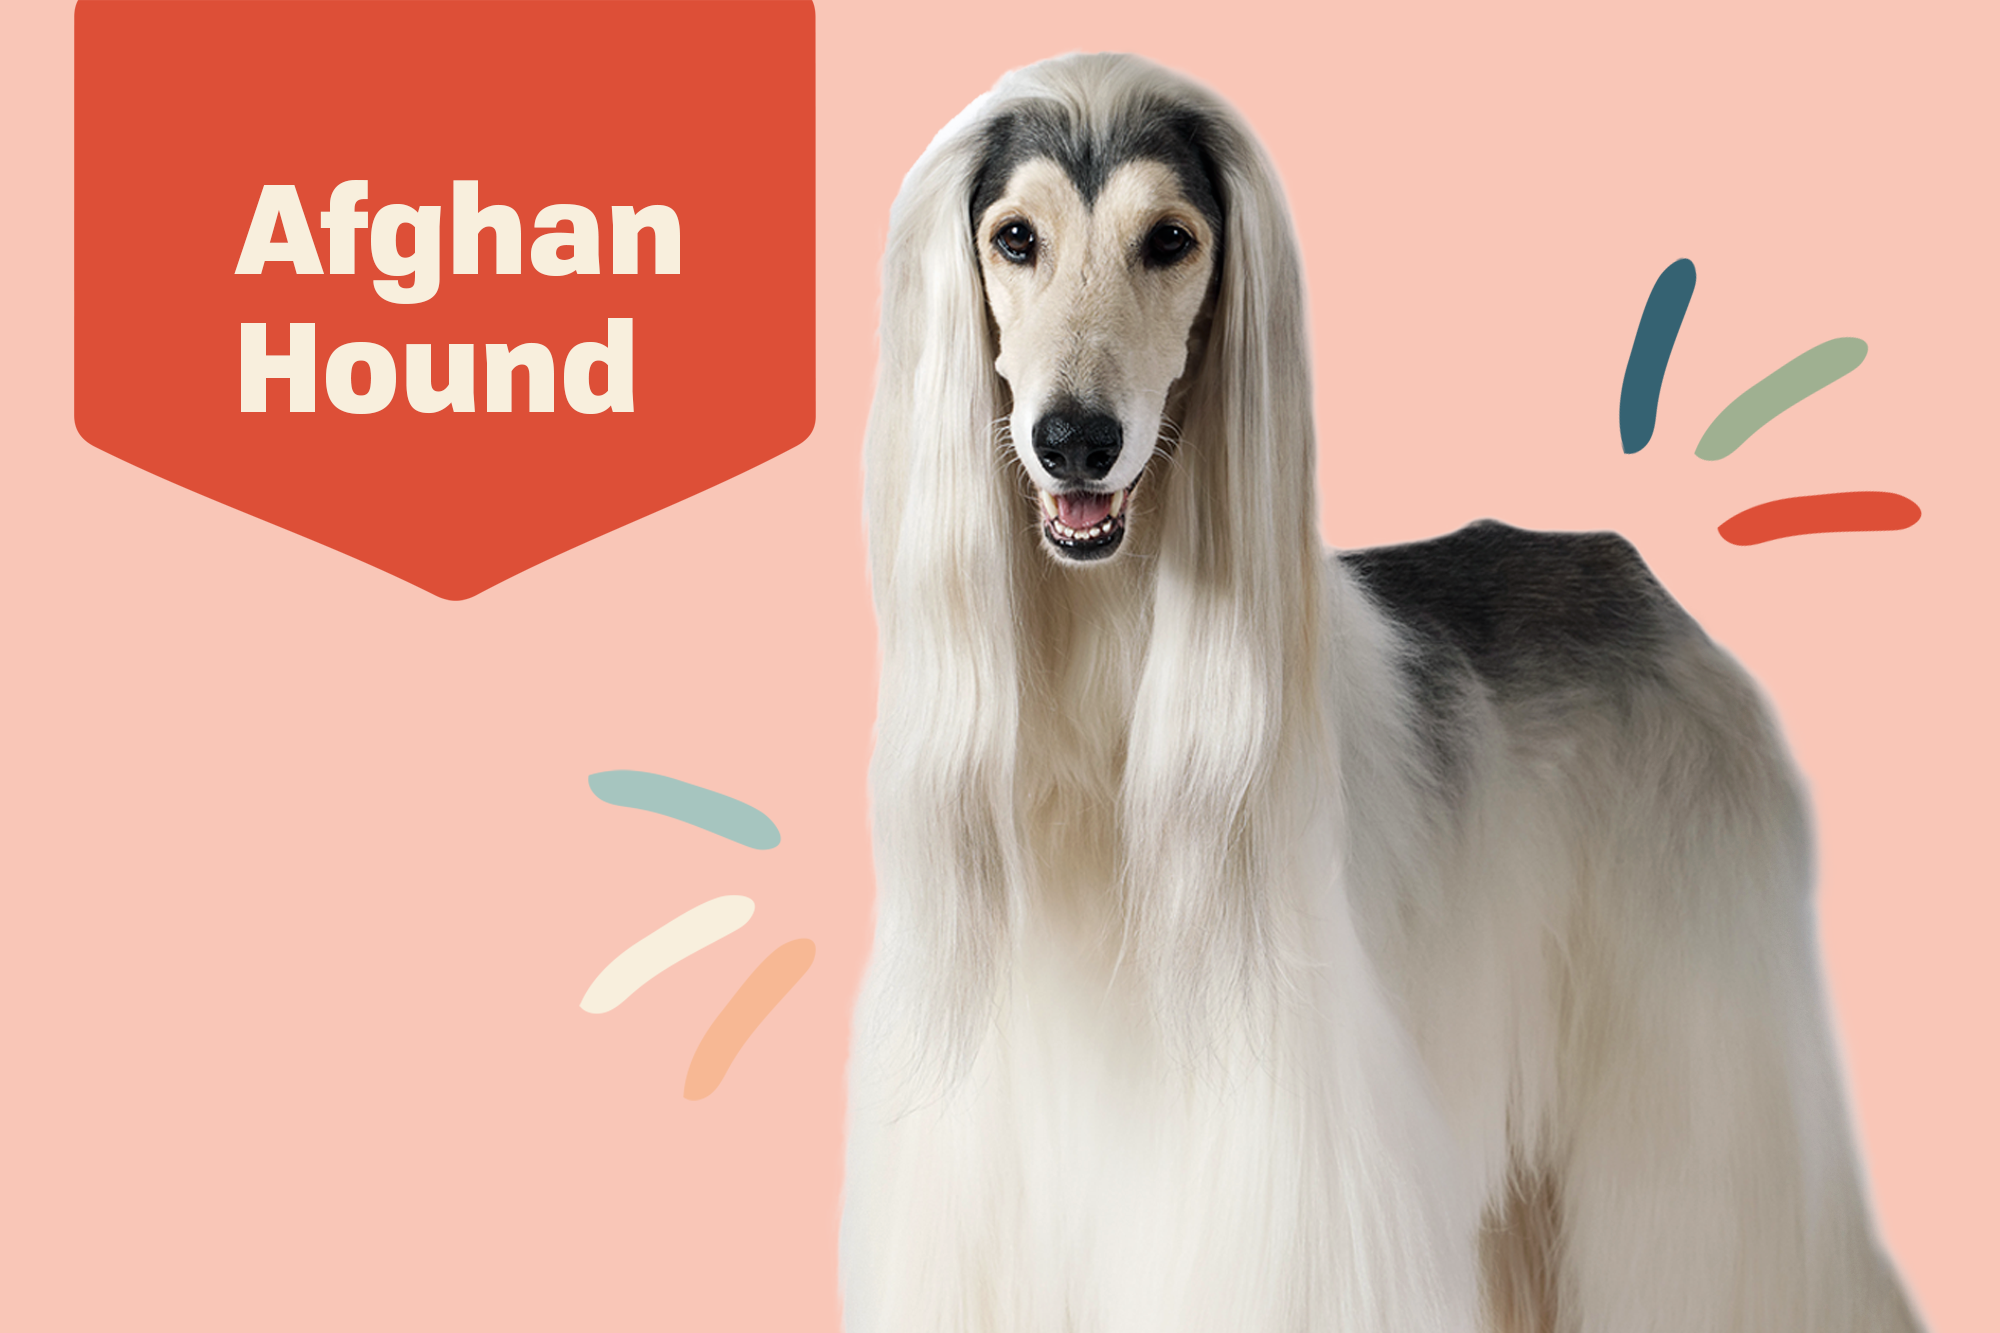 Afghan Hound Breed Photo